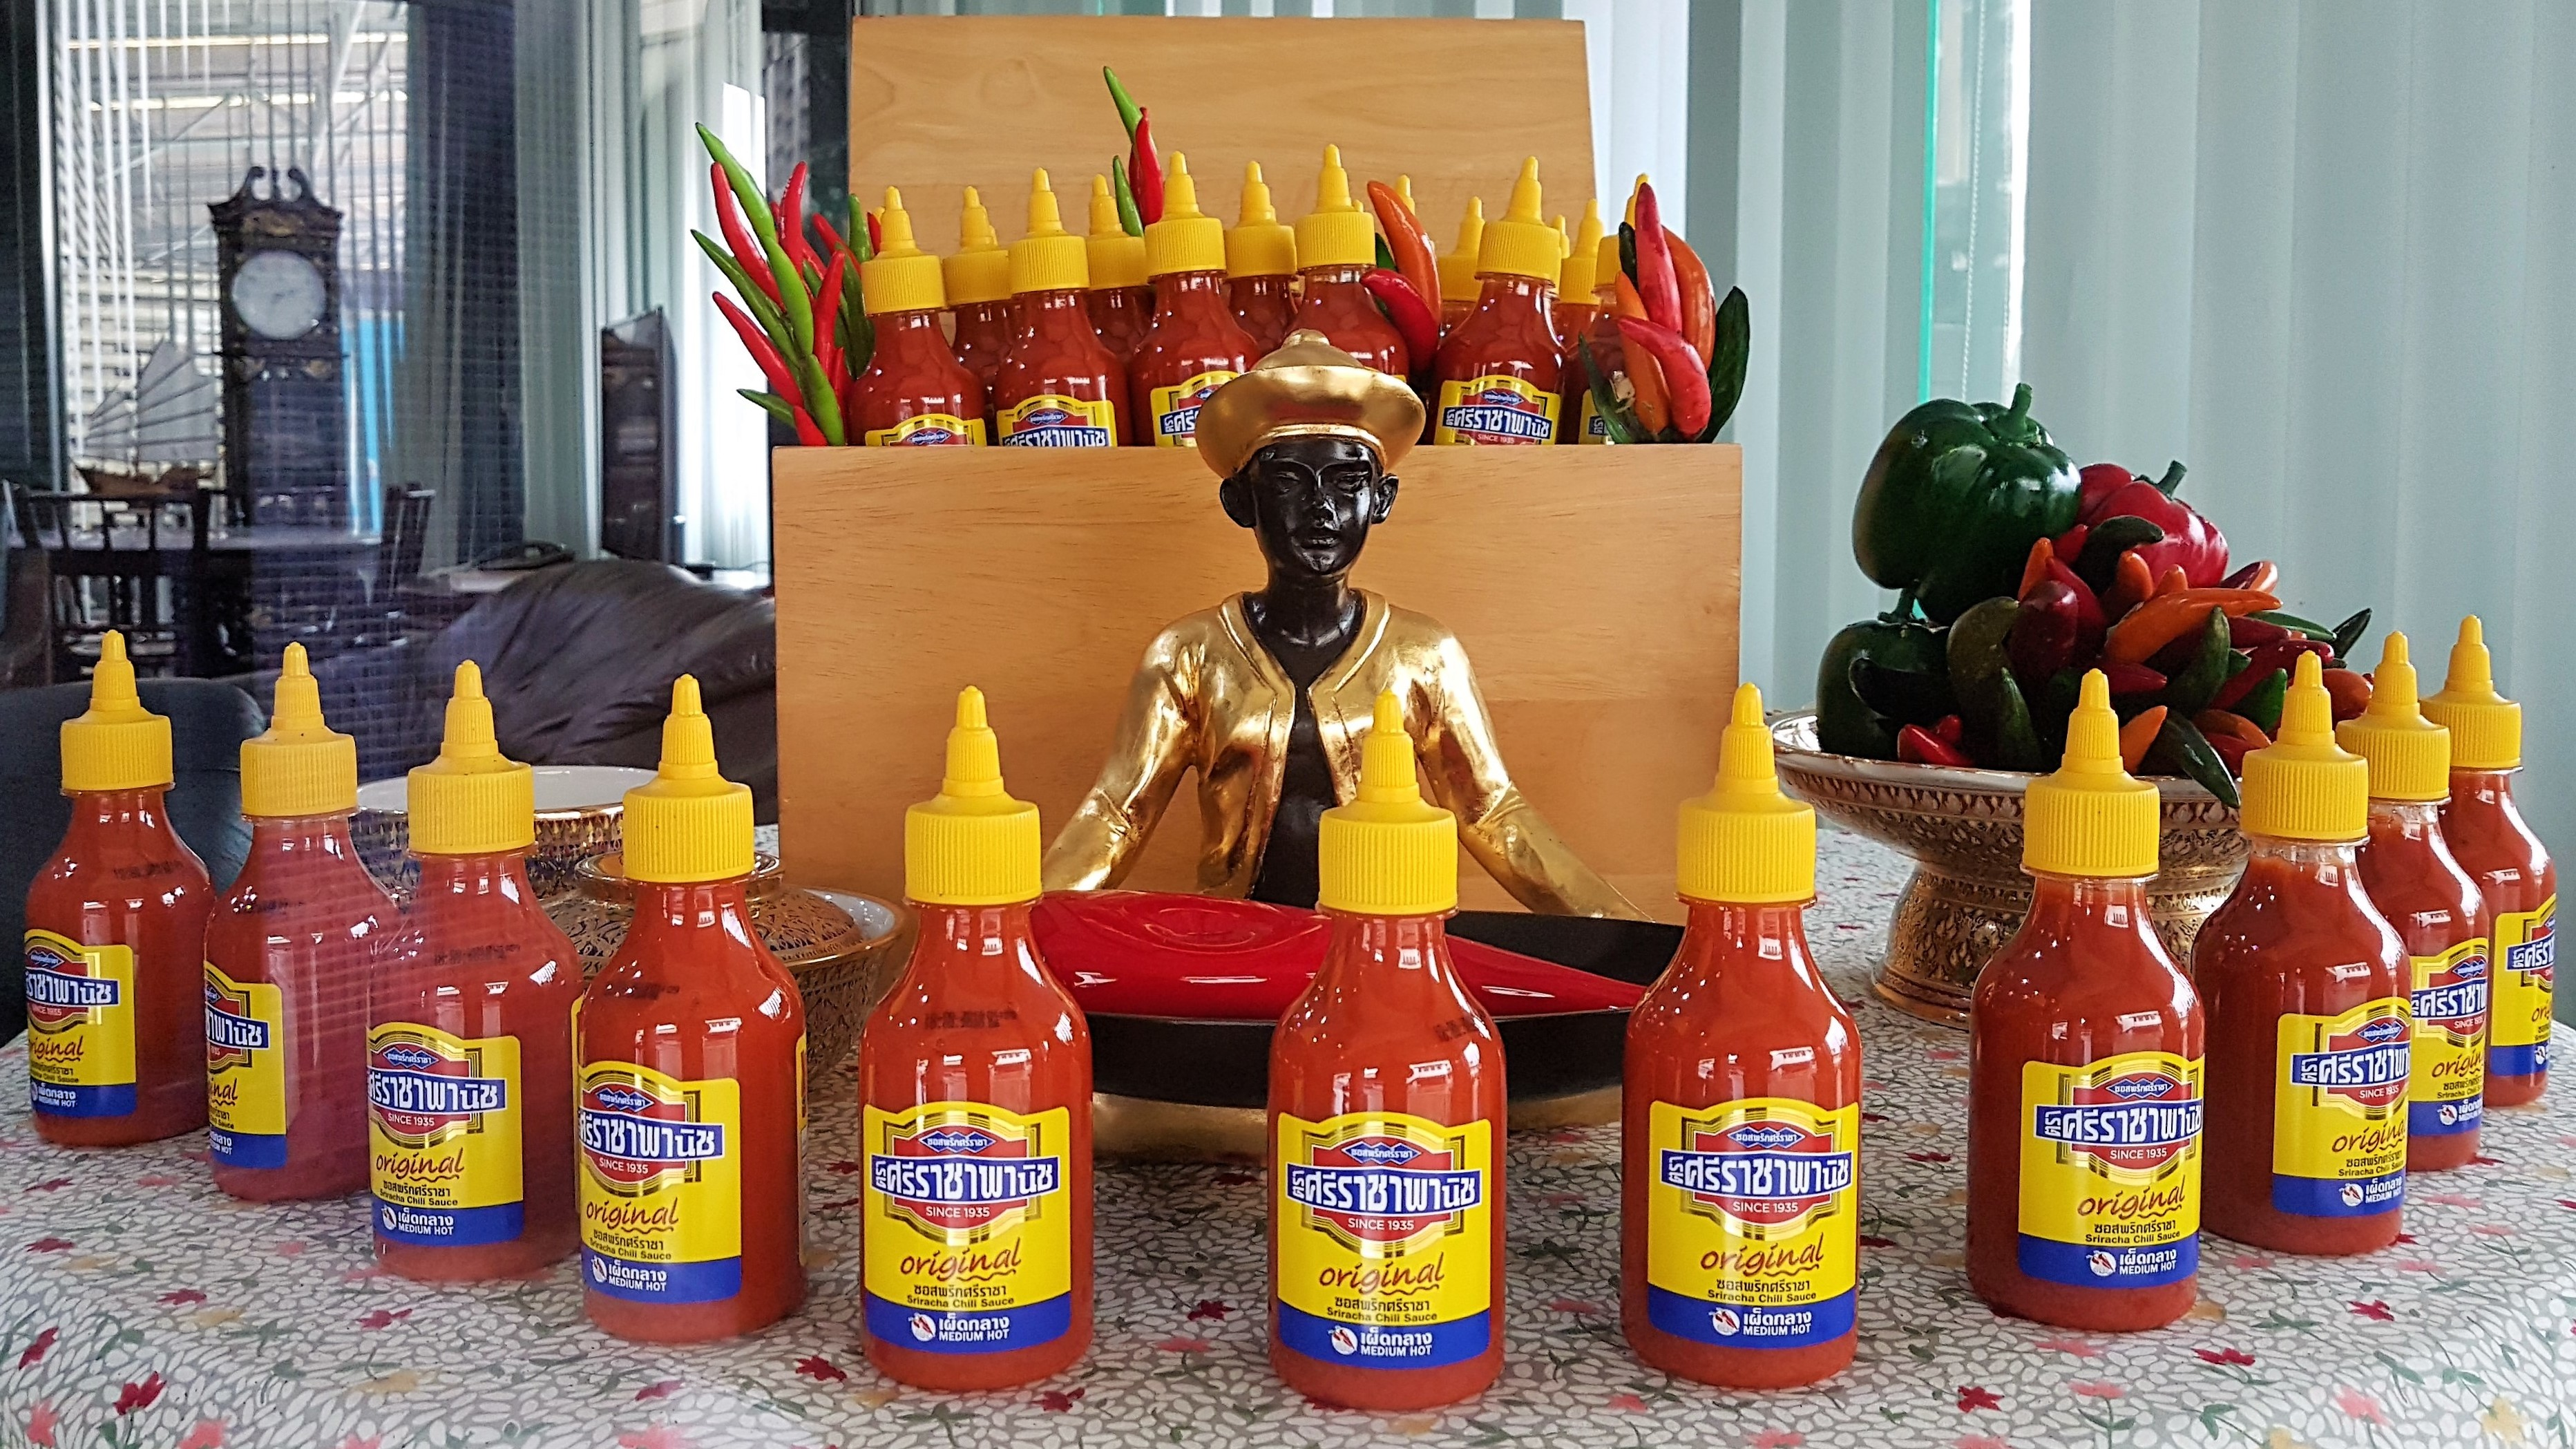 Sriraja Panich is the brand name of one of two Sriracha sauces created by Saowanit Trikityanukul's family. The family sold the brand to Thaitheparos, Thailand's leading sauce company, in the 1980s. The brand has struggled to gain a foothold in the U.S., where the Huy Fong Rooster brand of Sriracha, created by Vietnamese-American David Tran, reigns supreme. (Michael Sullivan/for NPR)